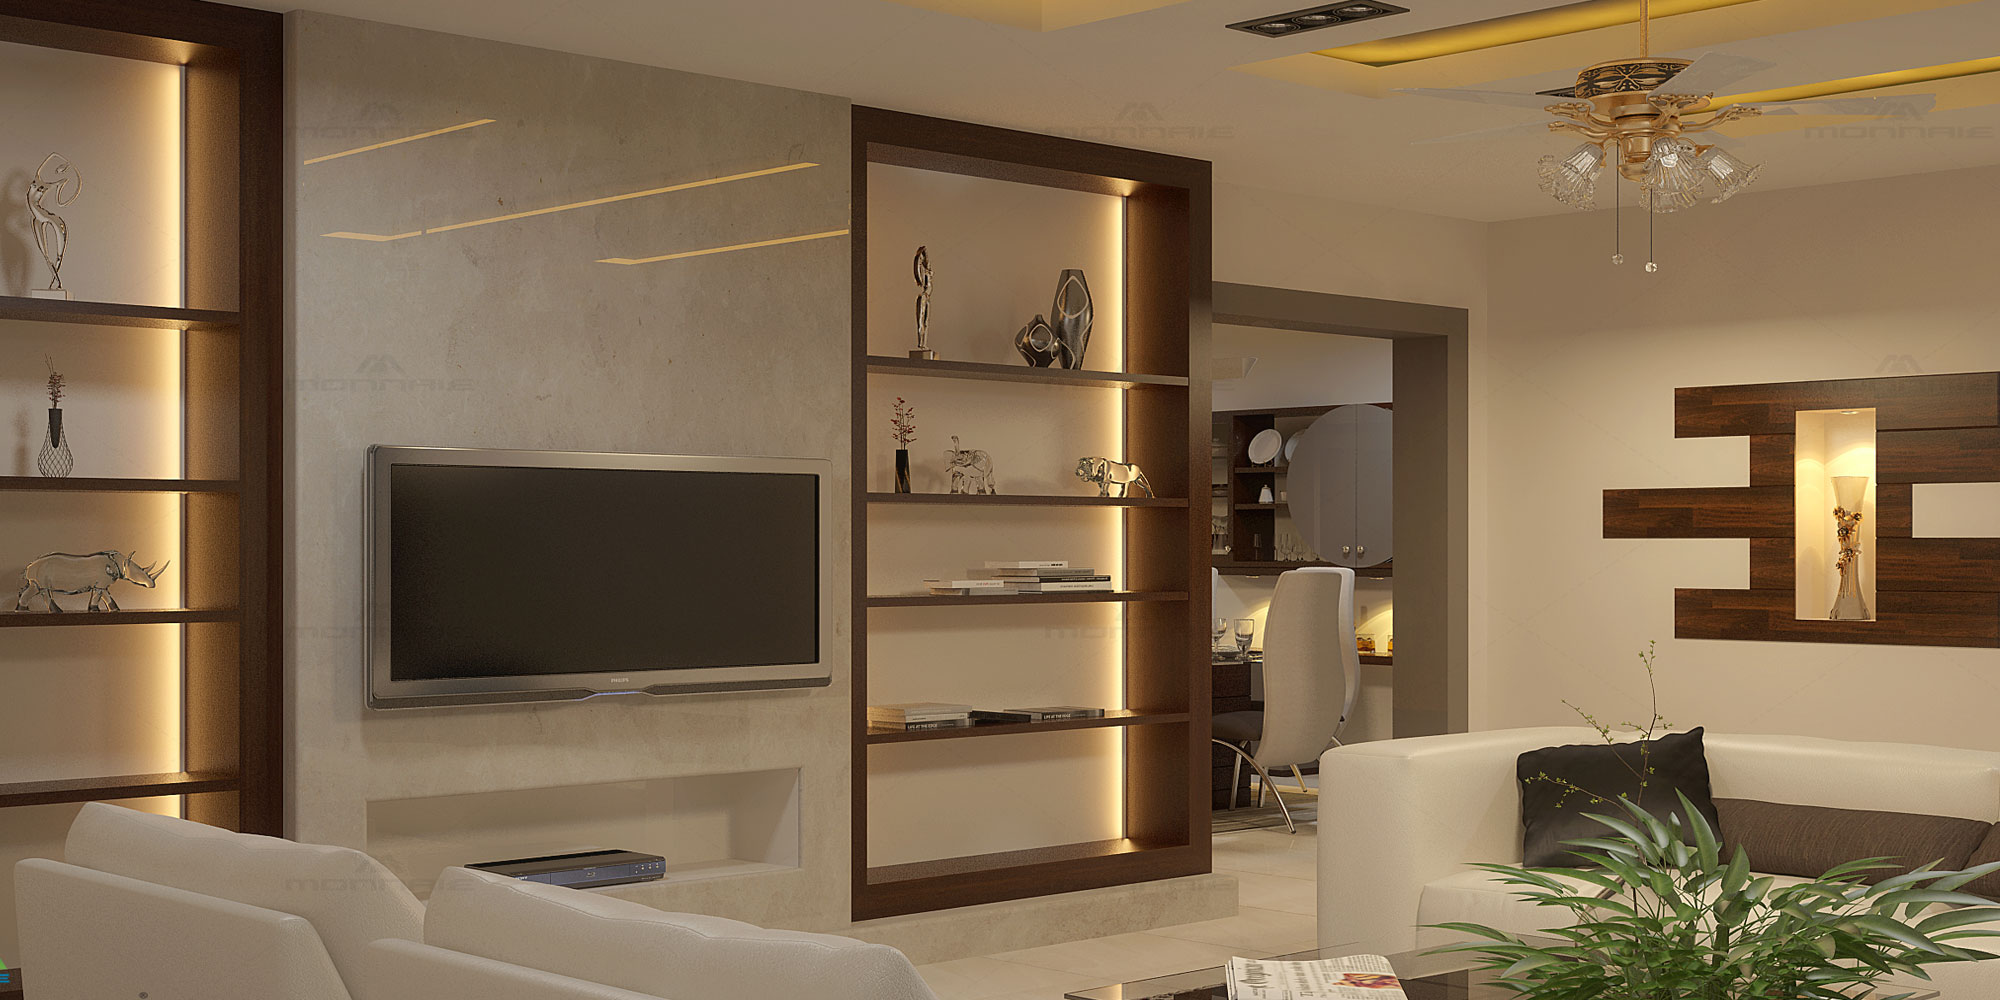 Living room interiors in Kottayam - Monnaie Architects & Interiors